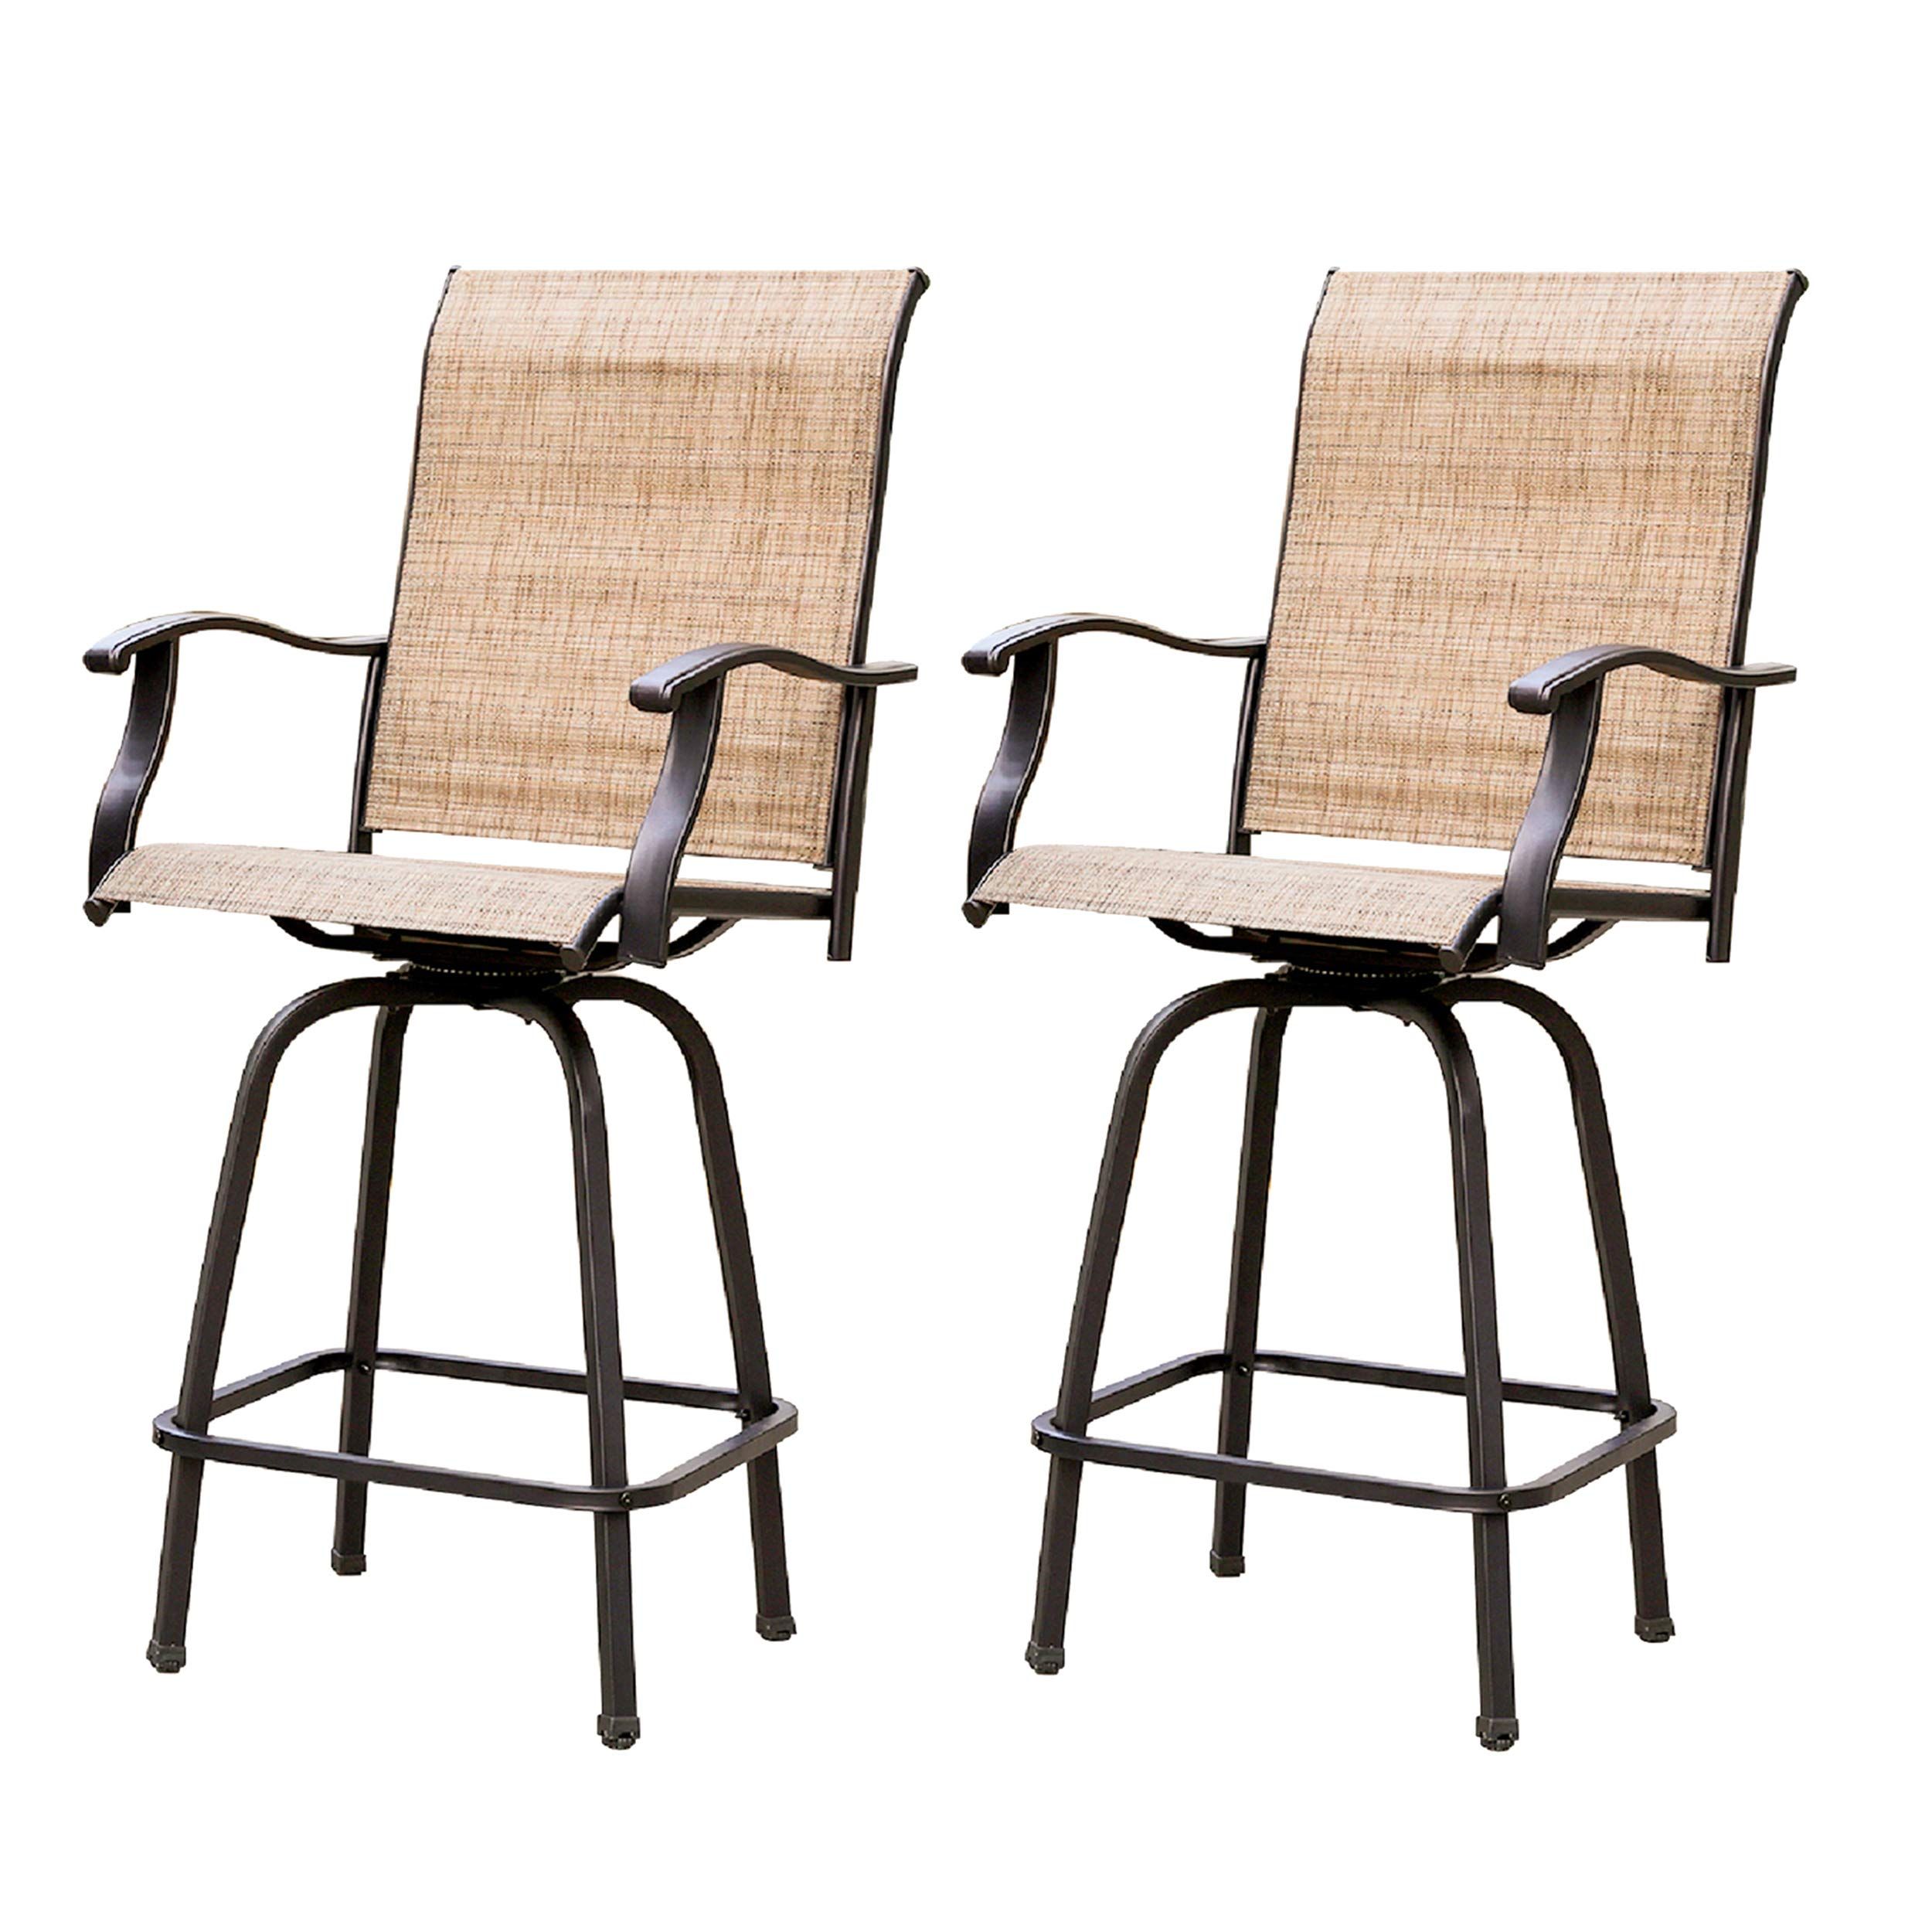 LOKATSE HOME 2 Piece Swivel Bar Stools Outdoor High Patio Chairs Furniture with All Weather Metal Frame, Beige-2chairs